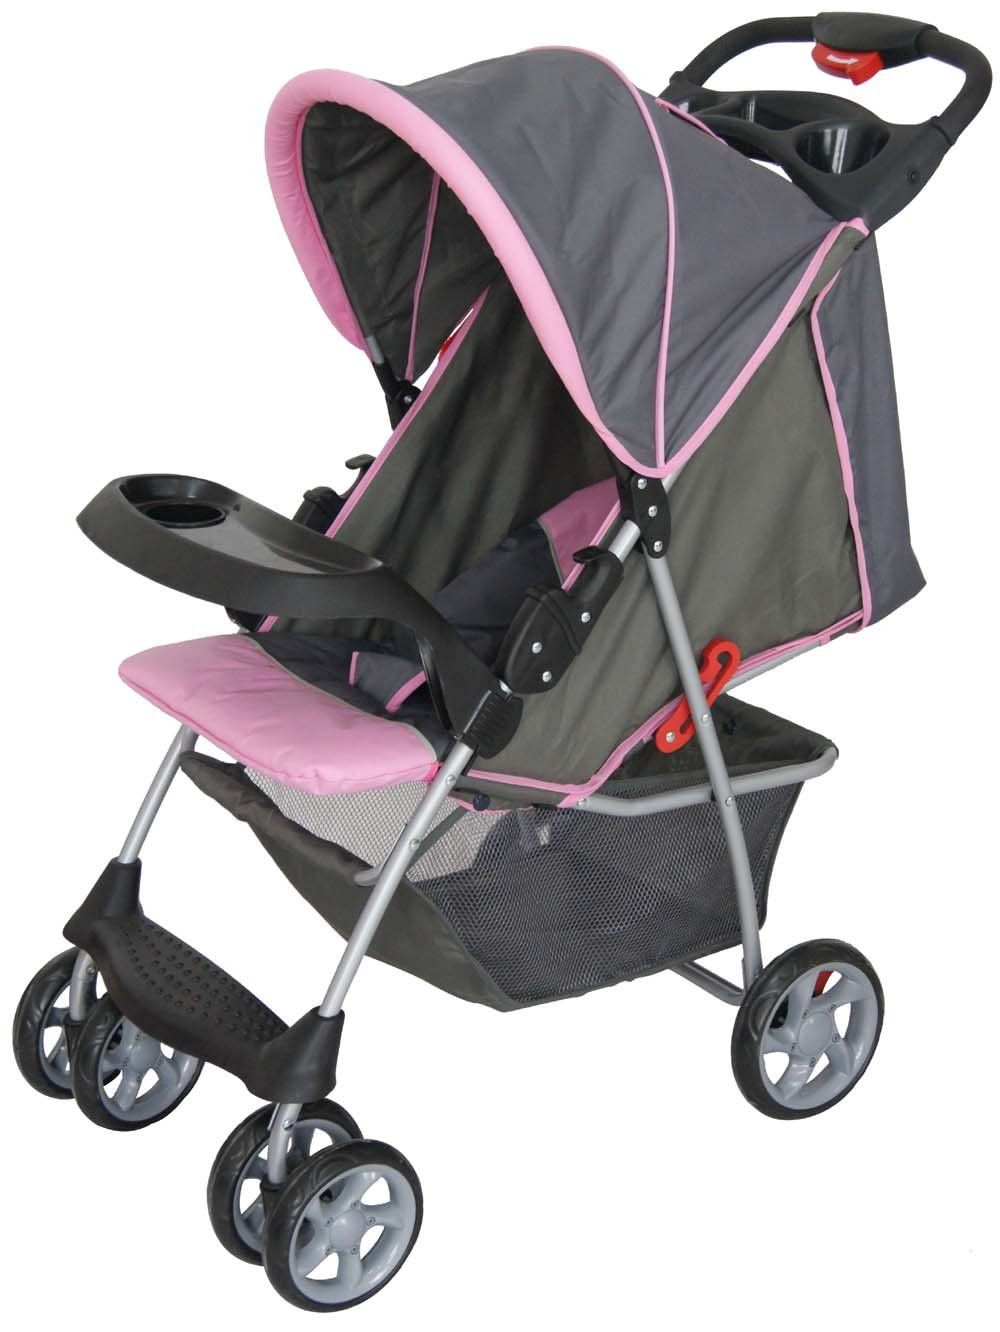 Toy Buggy With Car Seat 2013 Baby Doll Strollers And Car Seats C798c 10 20 Baby